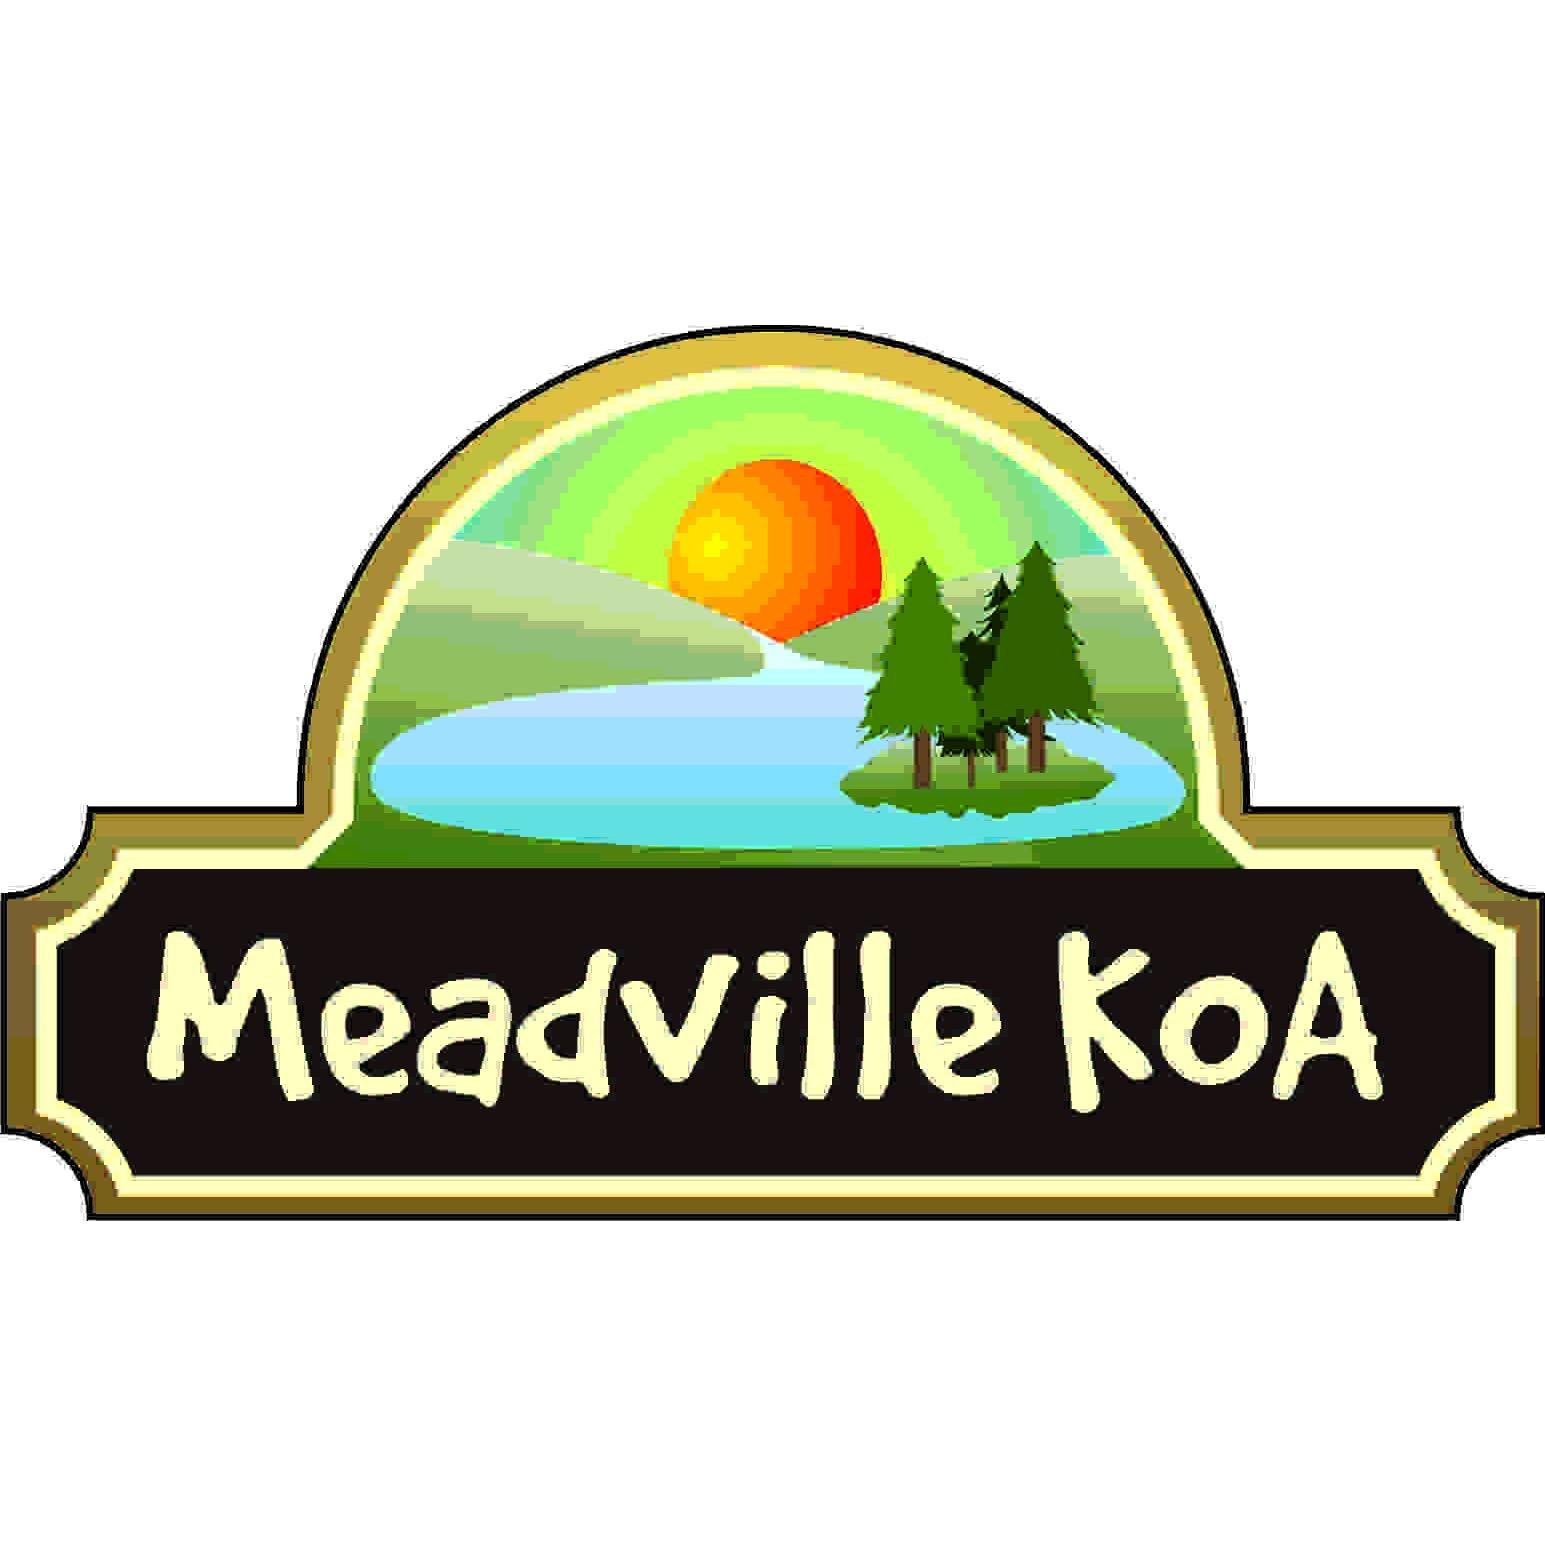 Meadville KOA Campground - Meadville, PA - Camps & Campgrounds